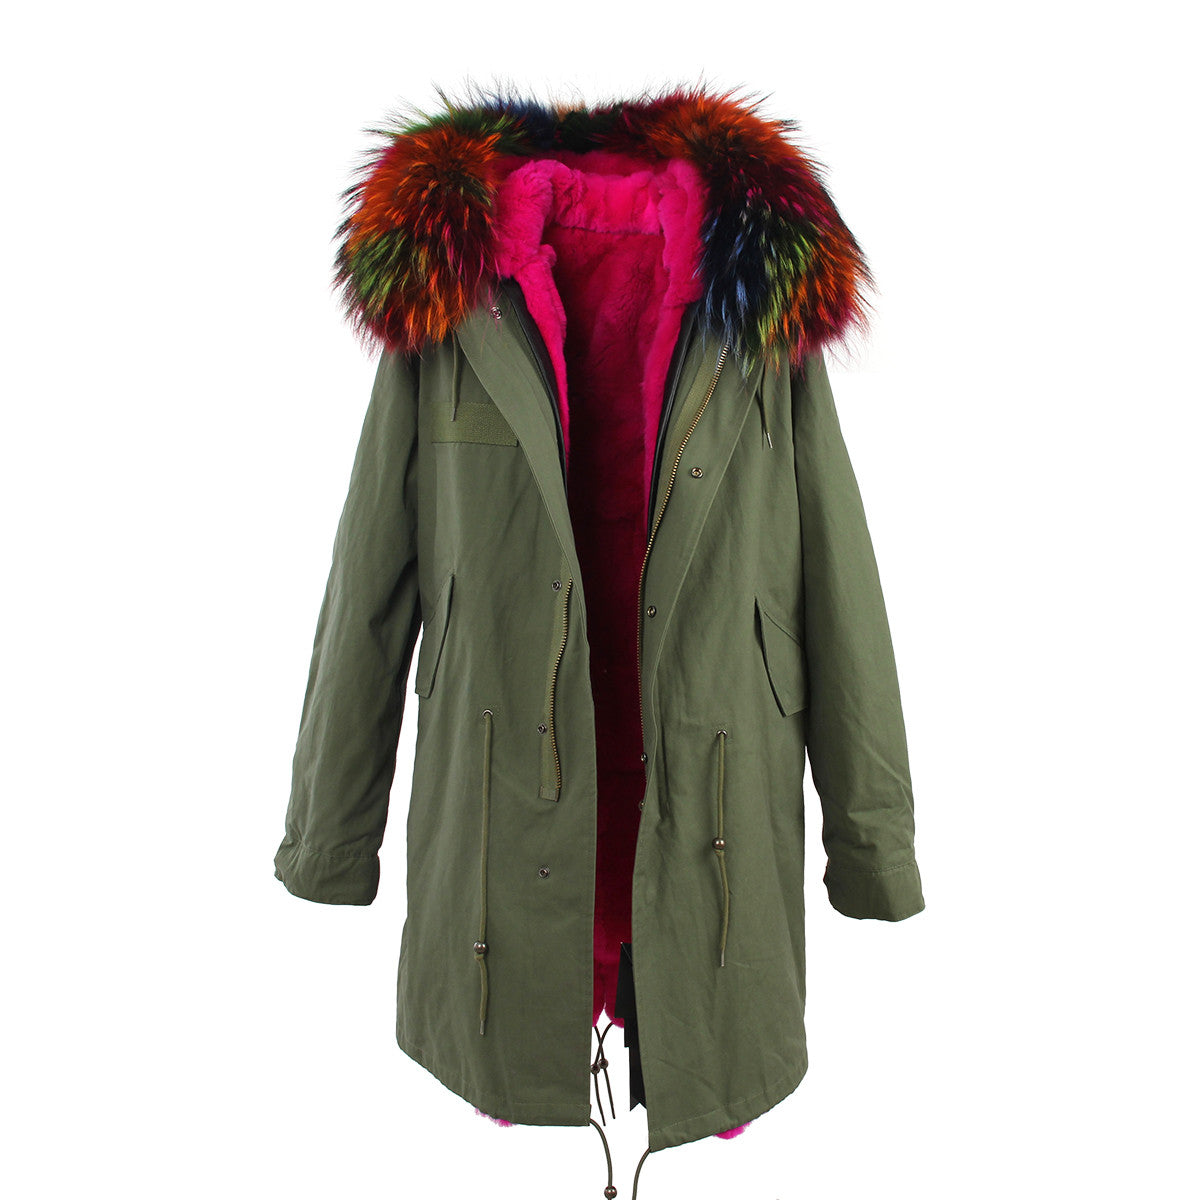 Fashion Women Raccoon Rabbit Fur Coat - All In One Place With Us - 15